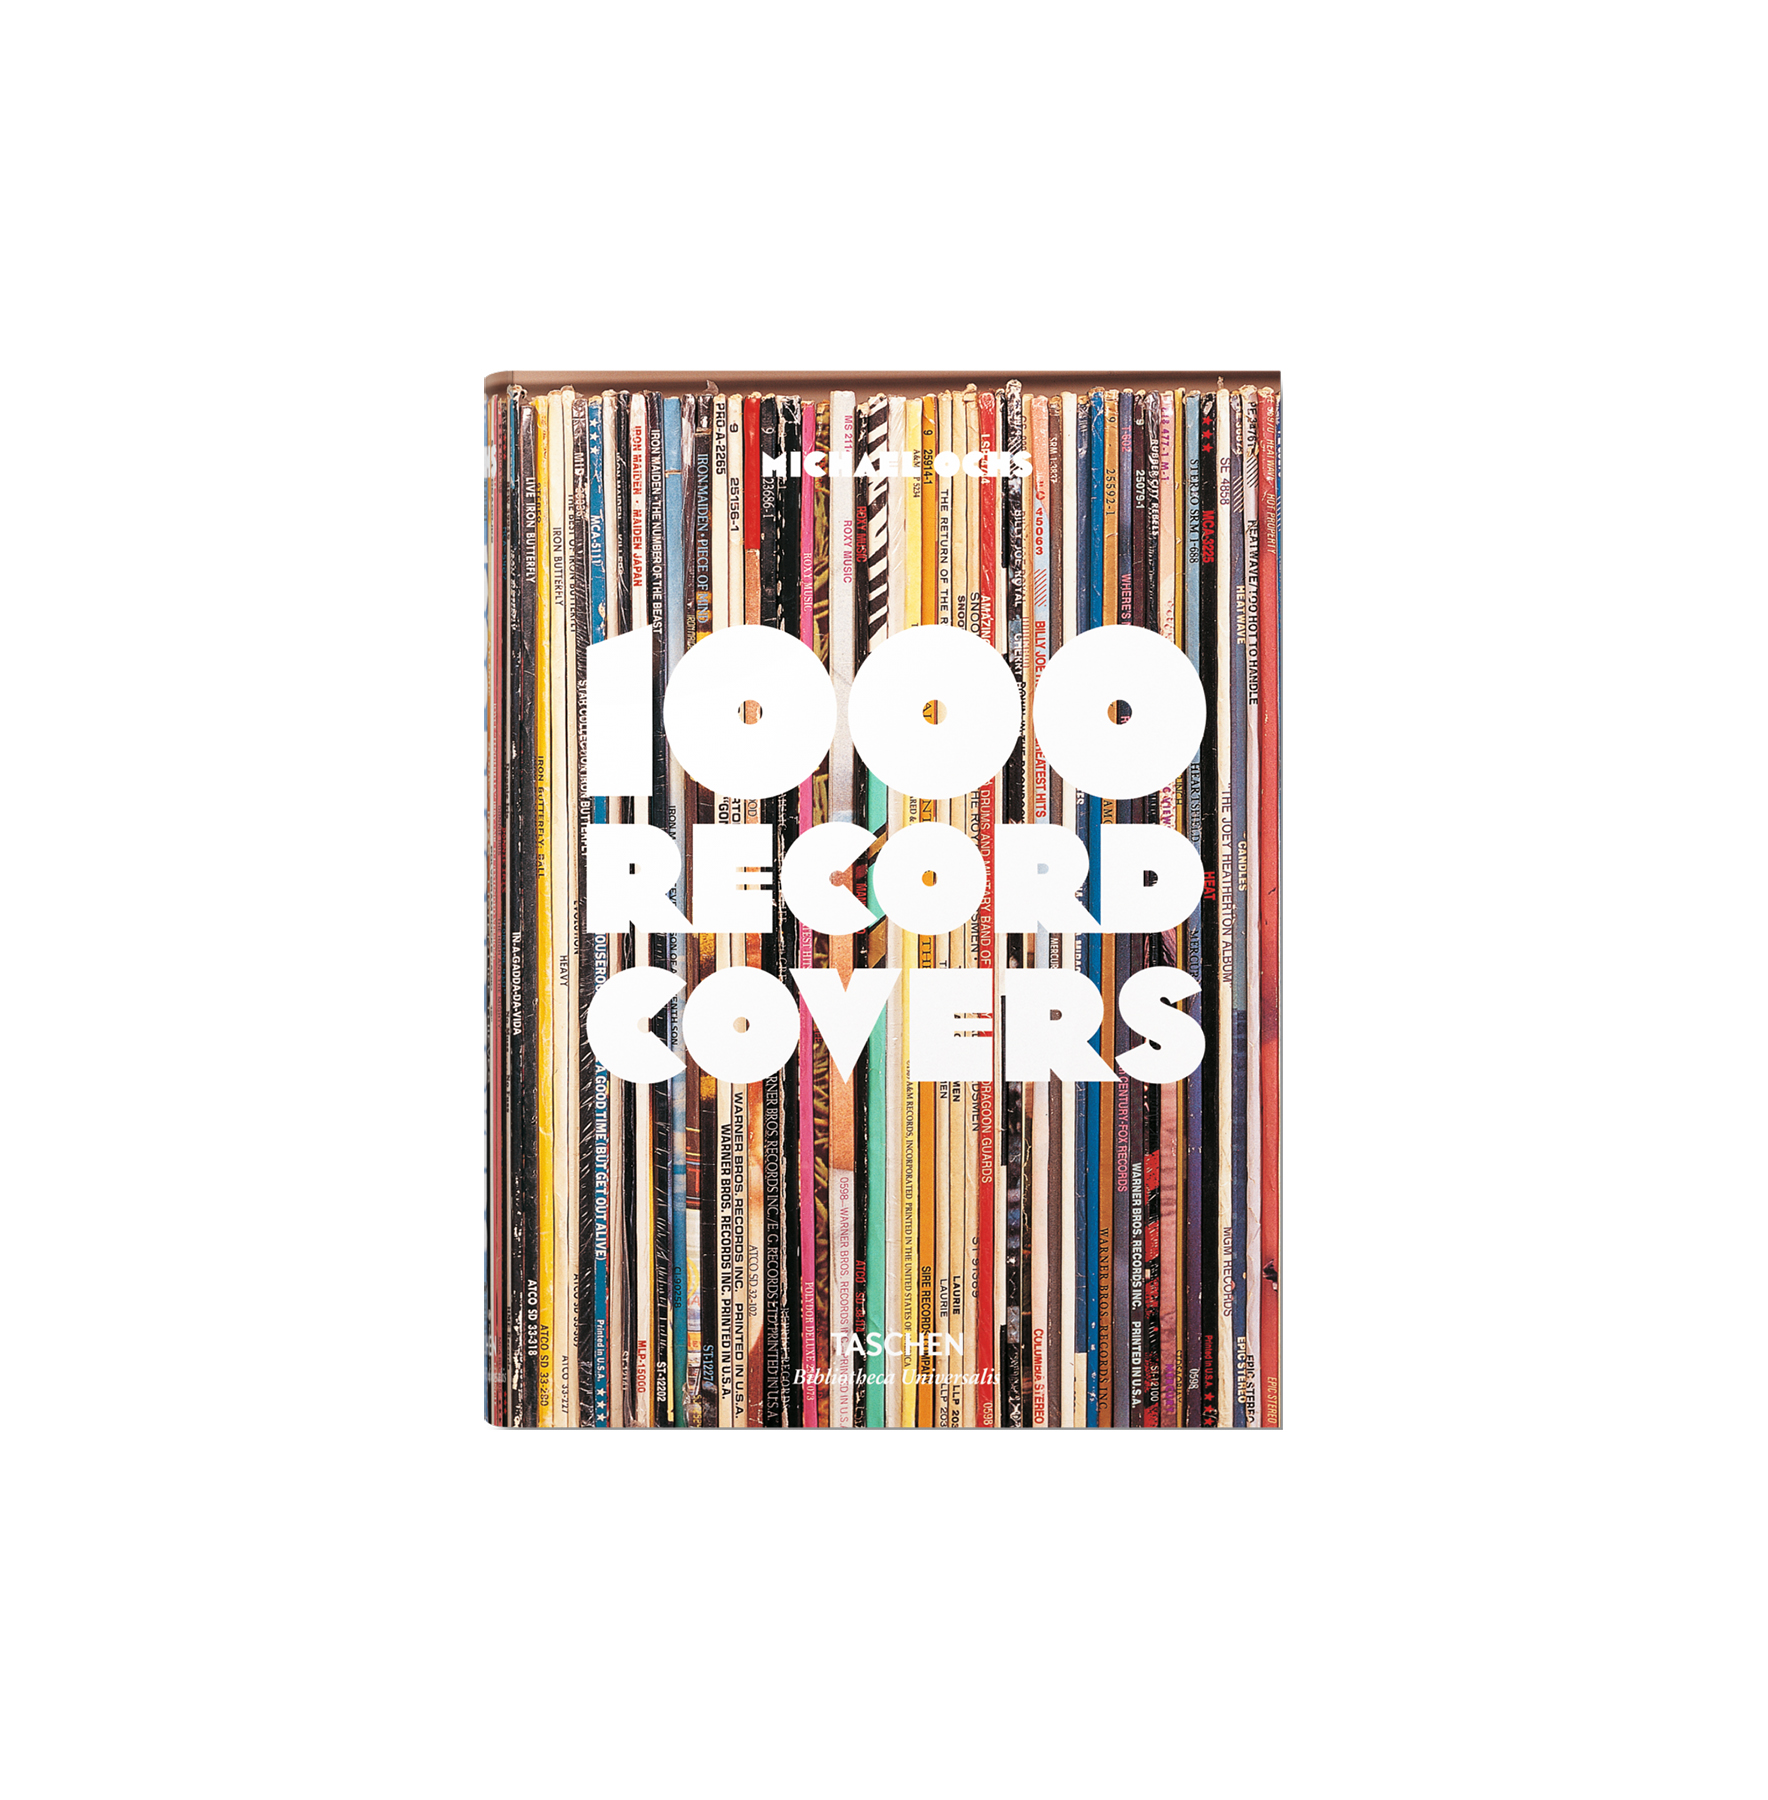 1,000 Record Covers, by Michael Ochs